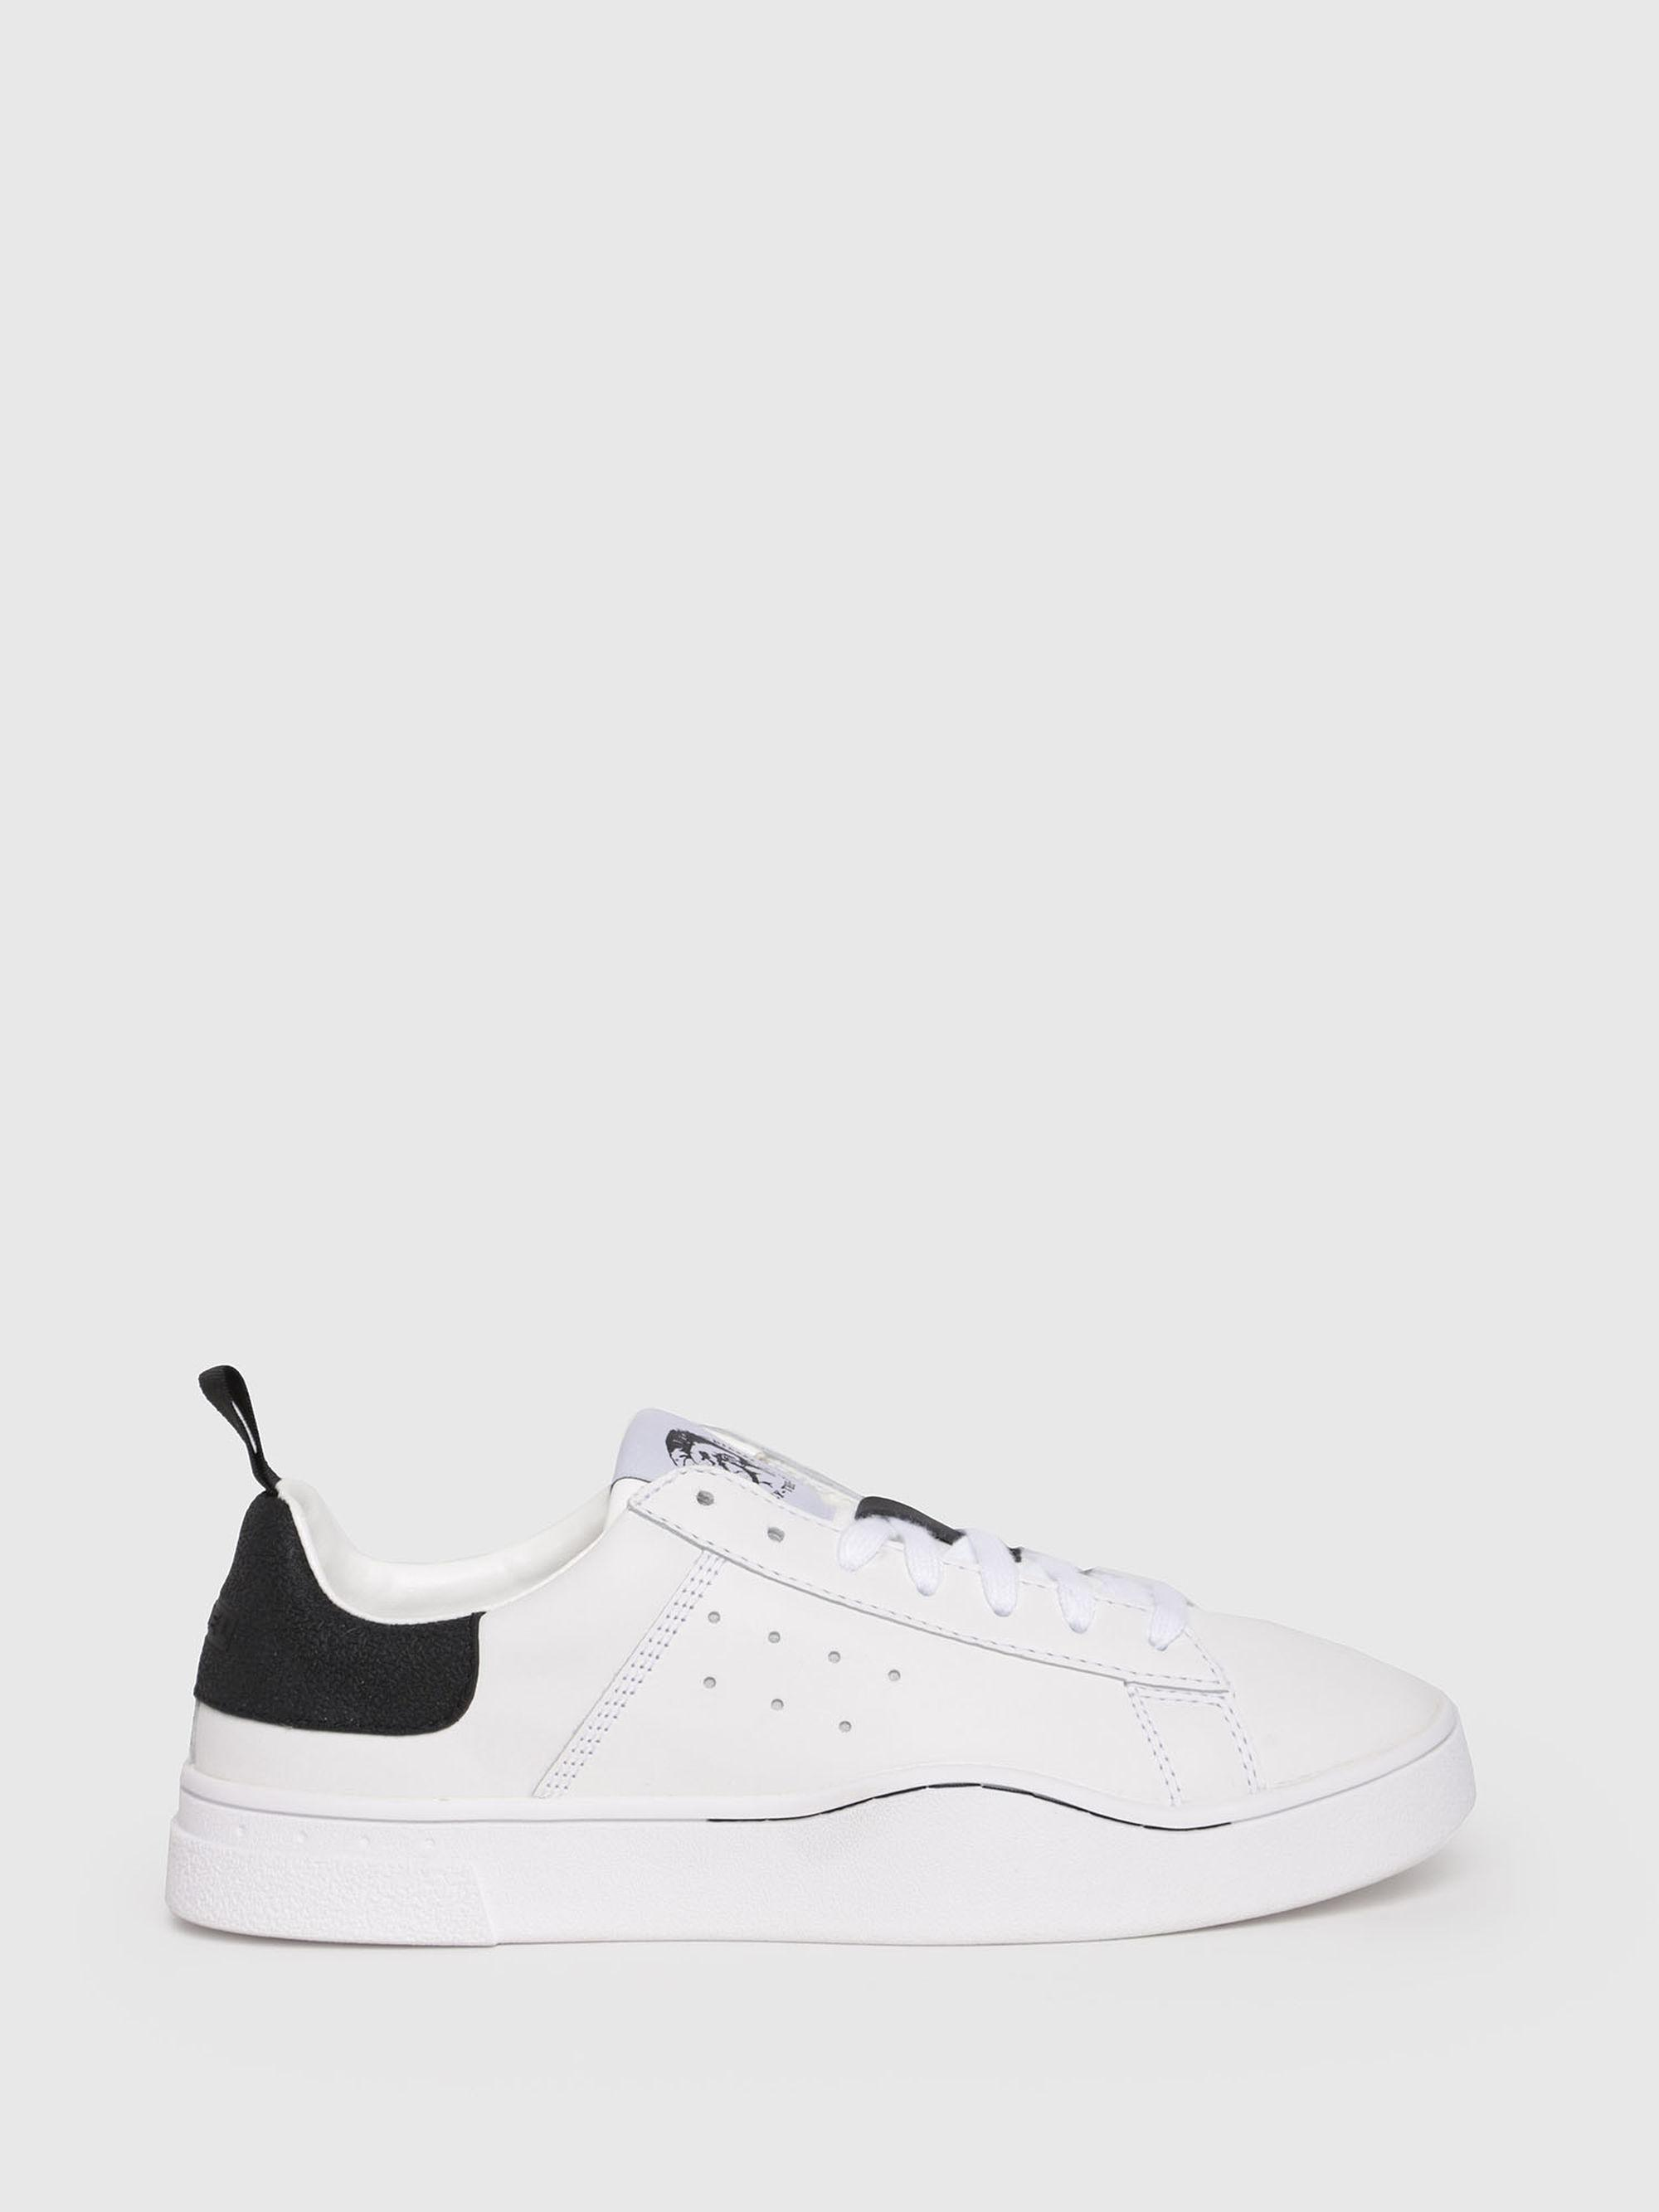 Diesel S-CLEVER LOW White Trainers With Sole Detail clearance clearance footlocker finishline sale online clearance hot sale best store to get cheap price clearance for nice lW75Q